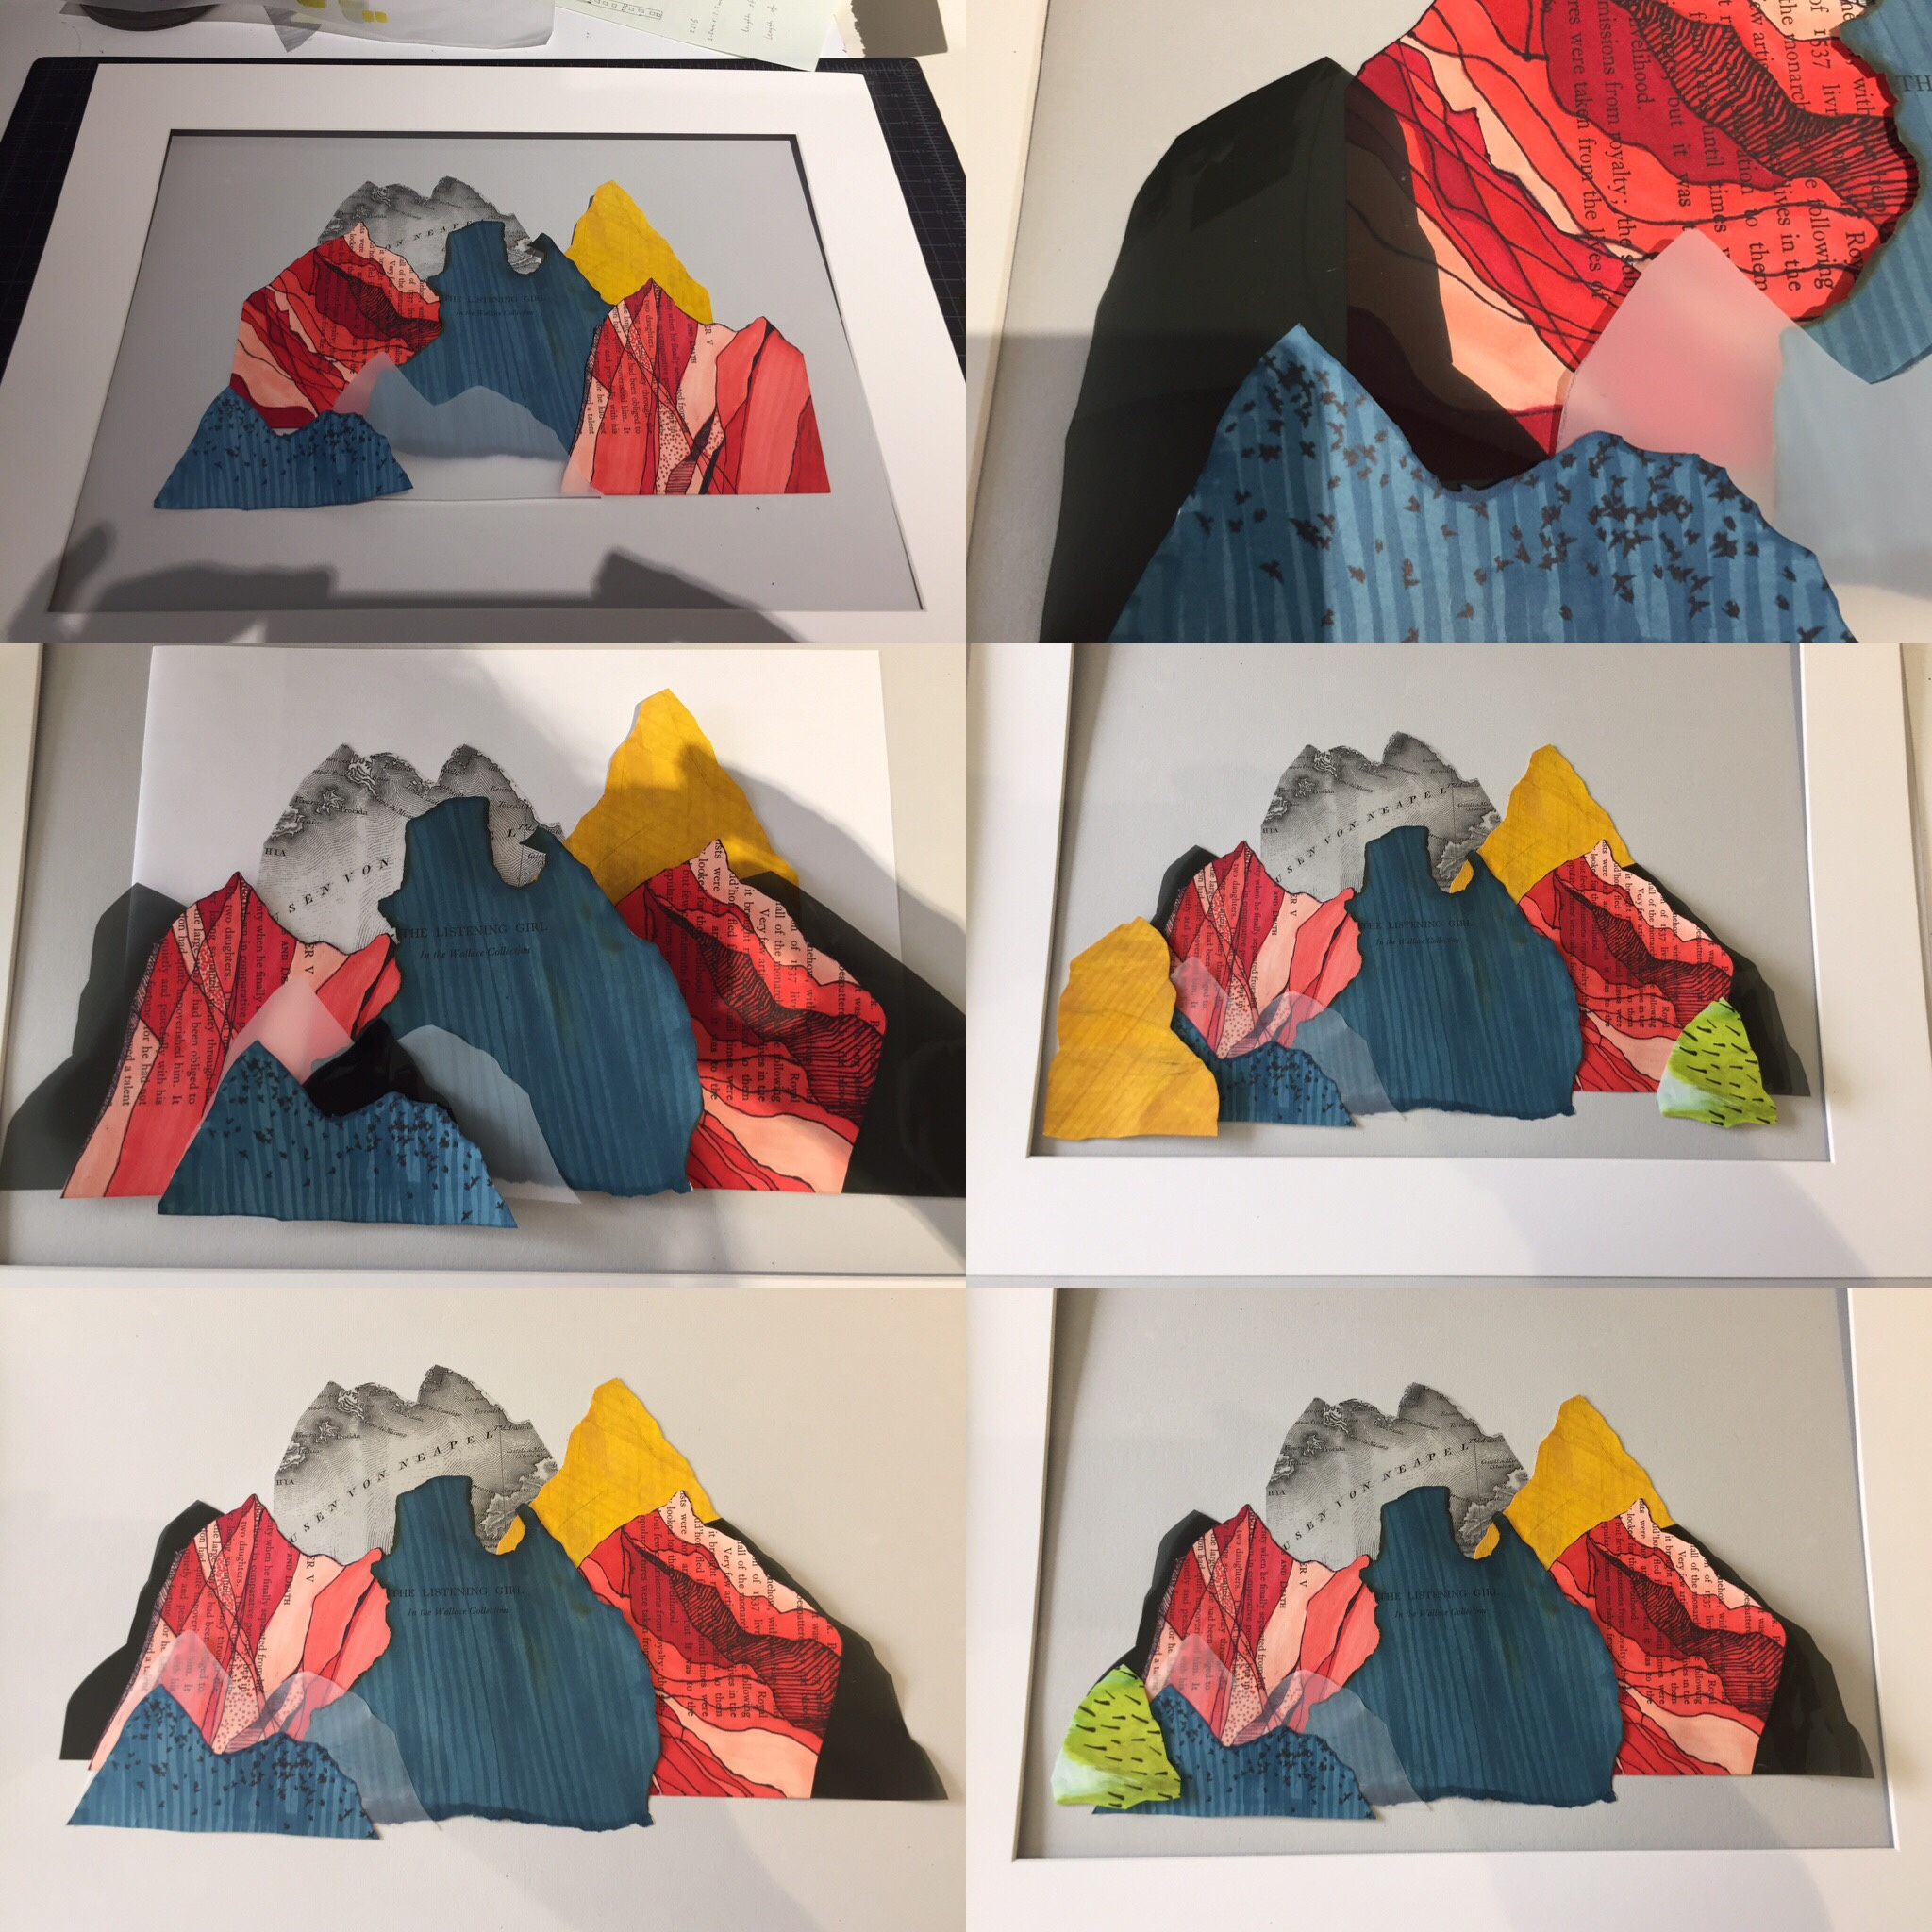 June 27/19 - Mountain collage commission